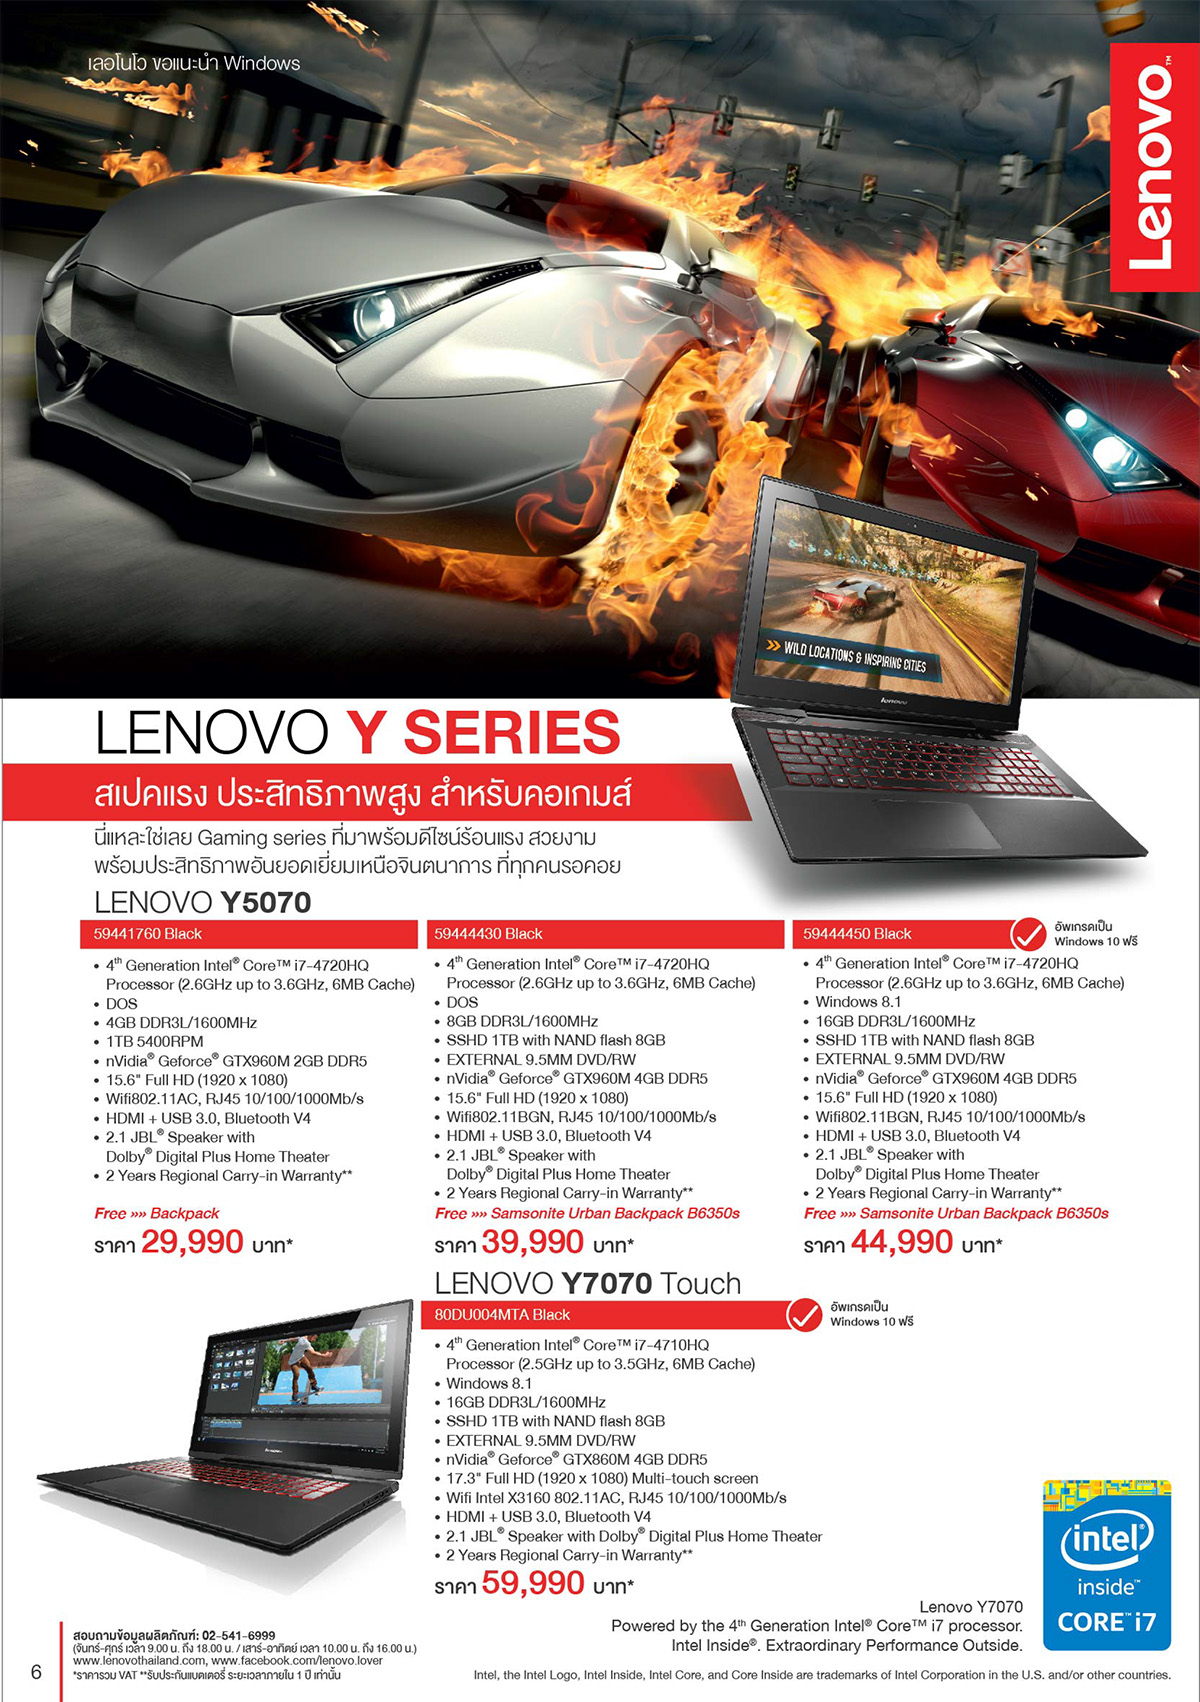 Lenovo Consumer Product Catalog Q2FY15_Final AW-6